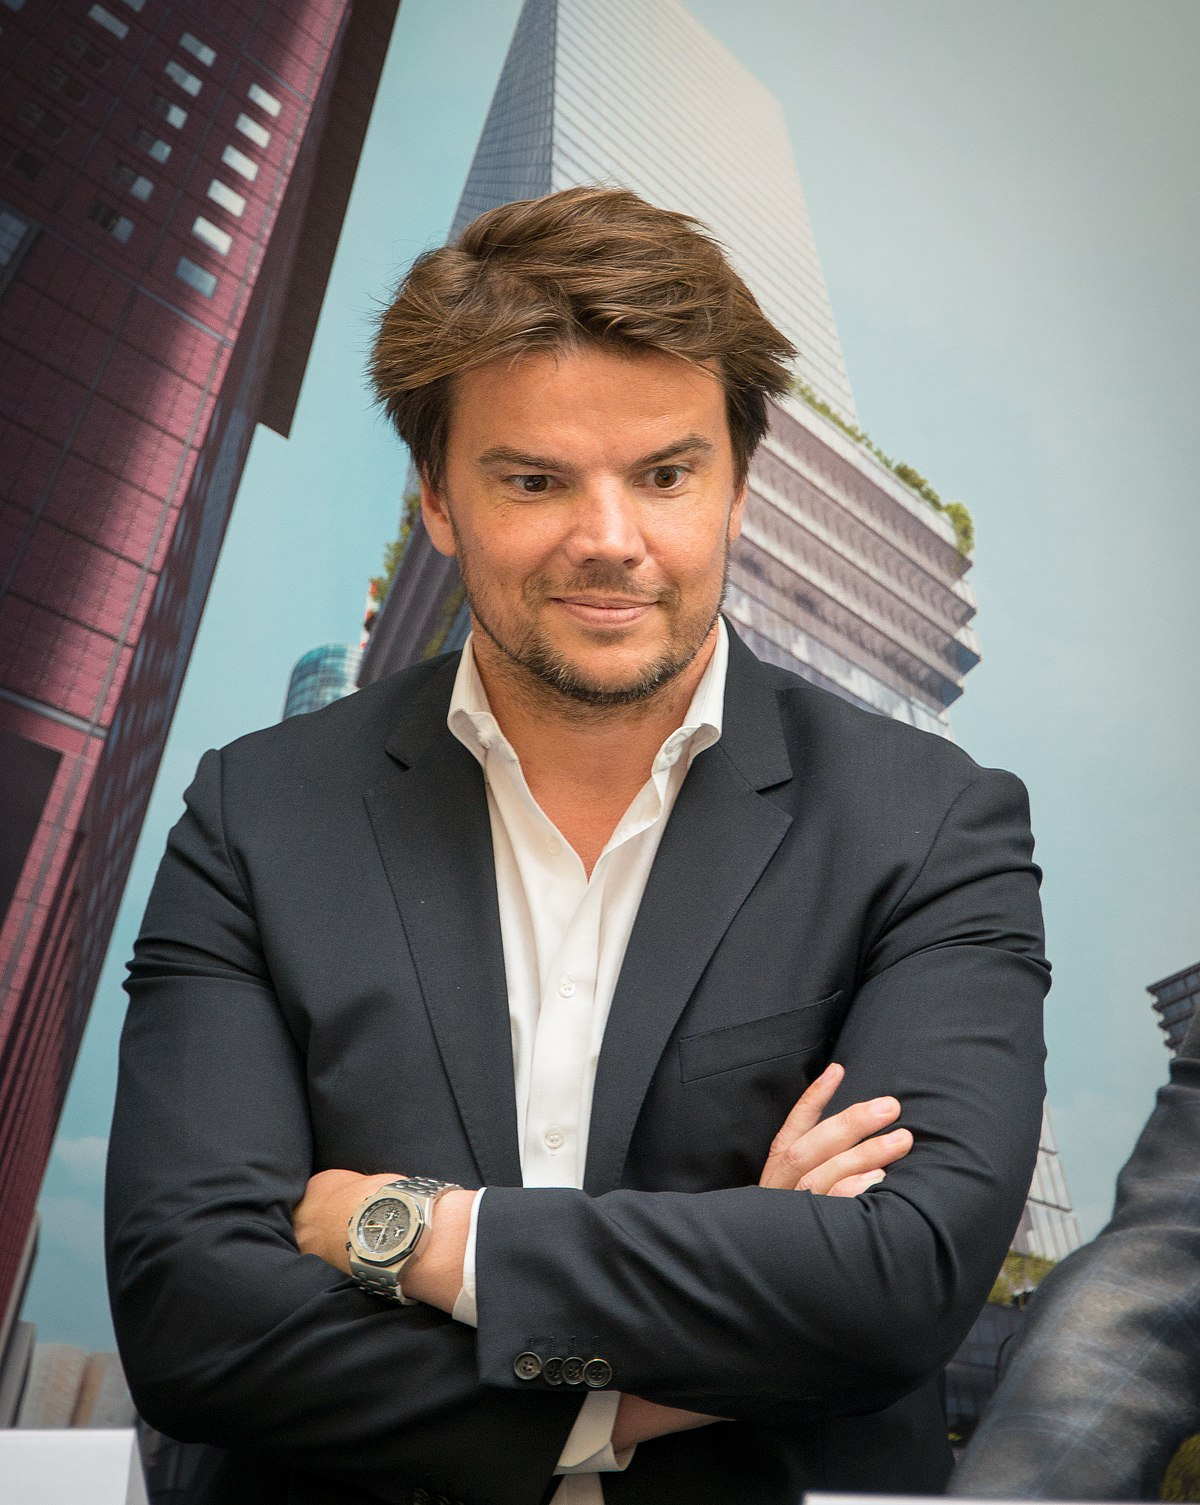 bjarke ingels wikipedia. Black Bedroom Furniture Sets. Home Design Ideas